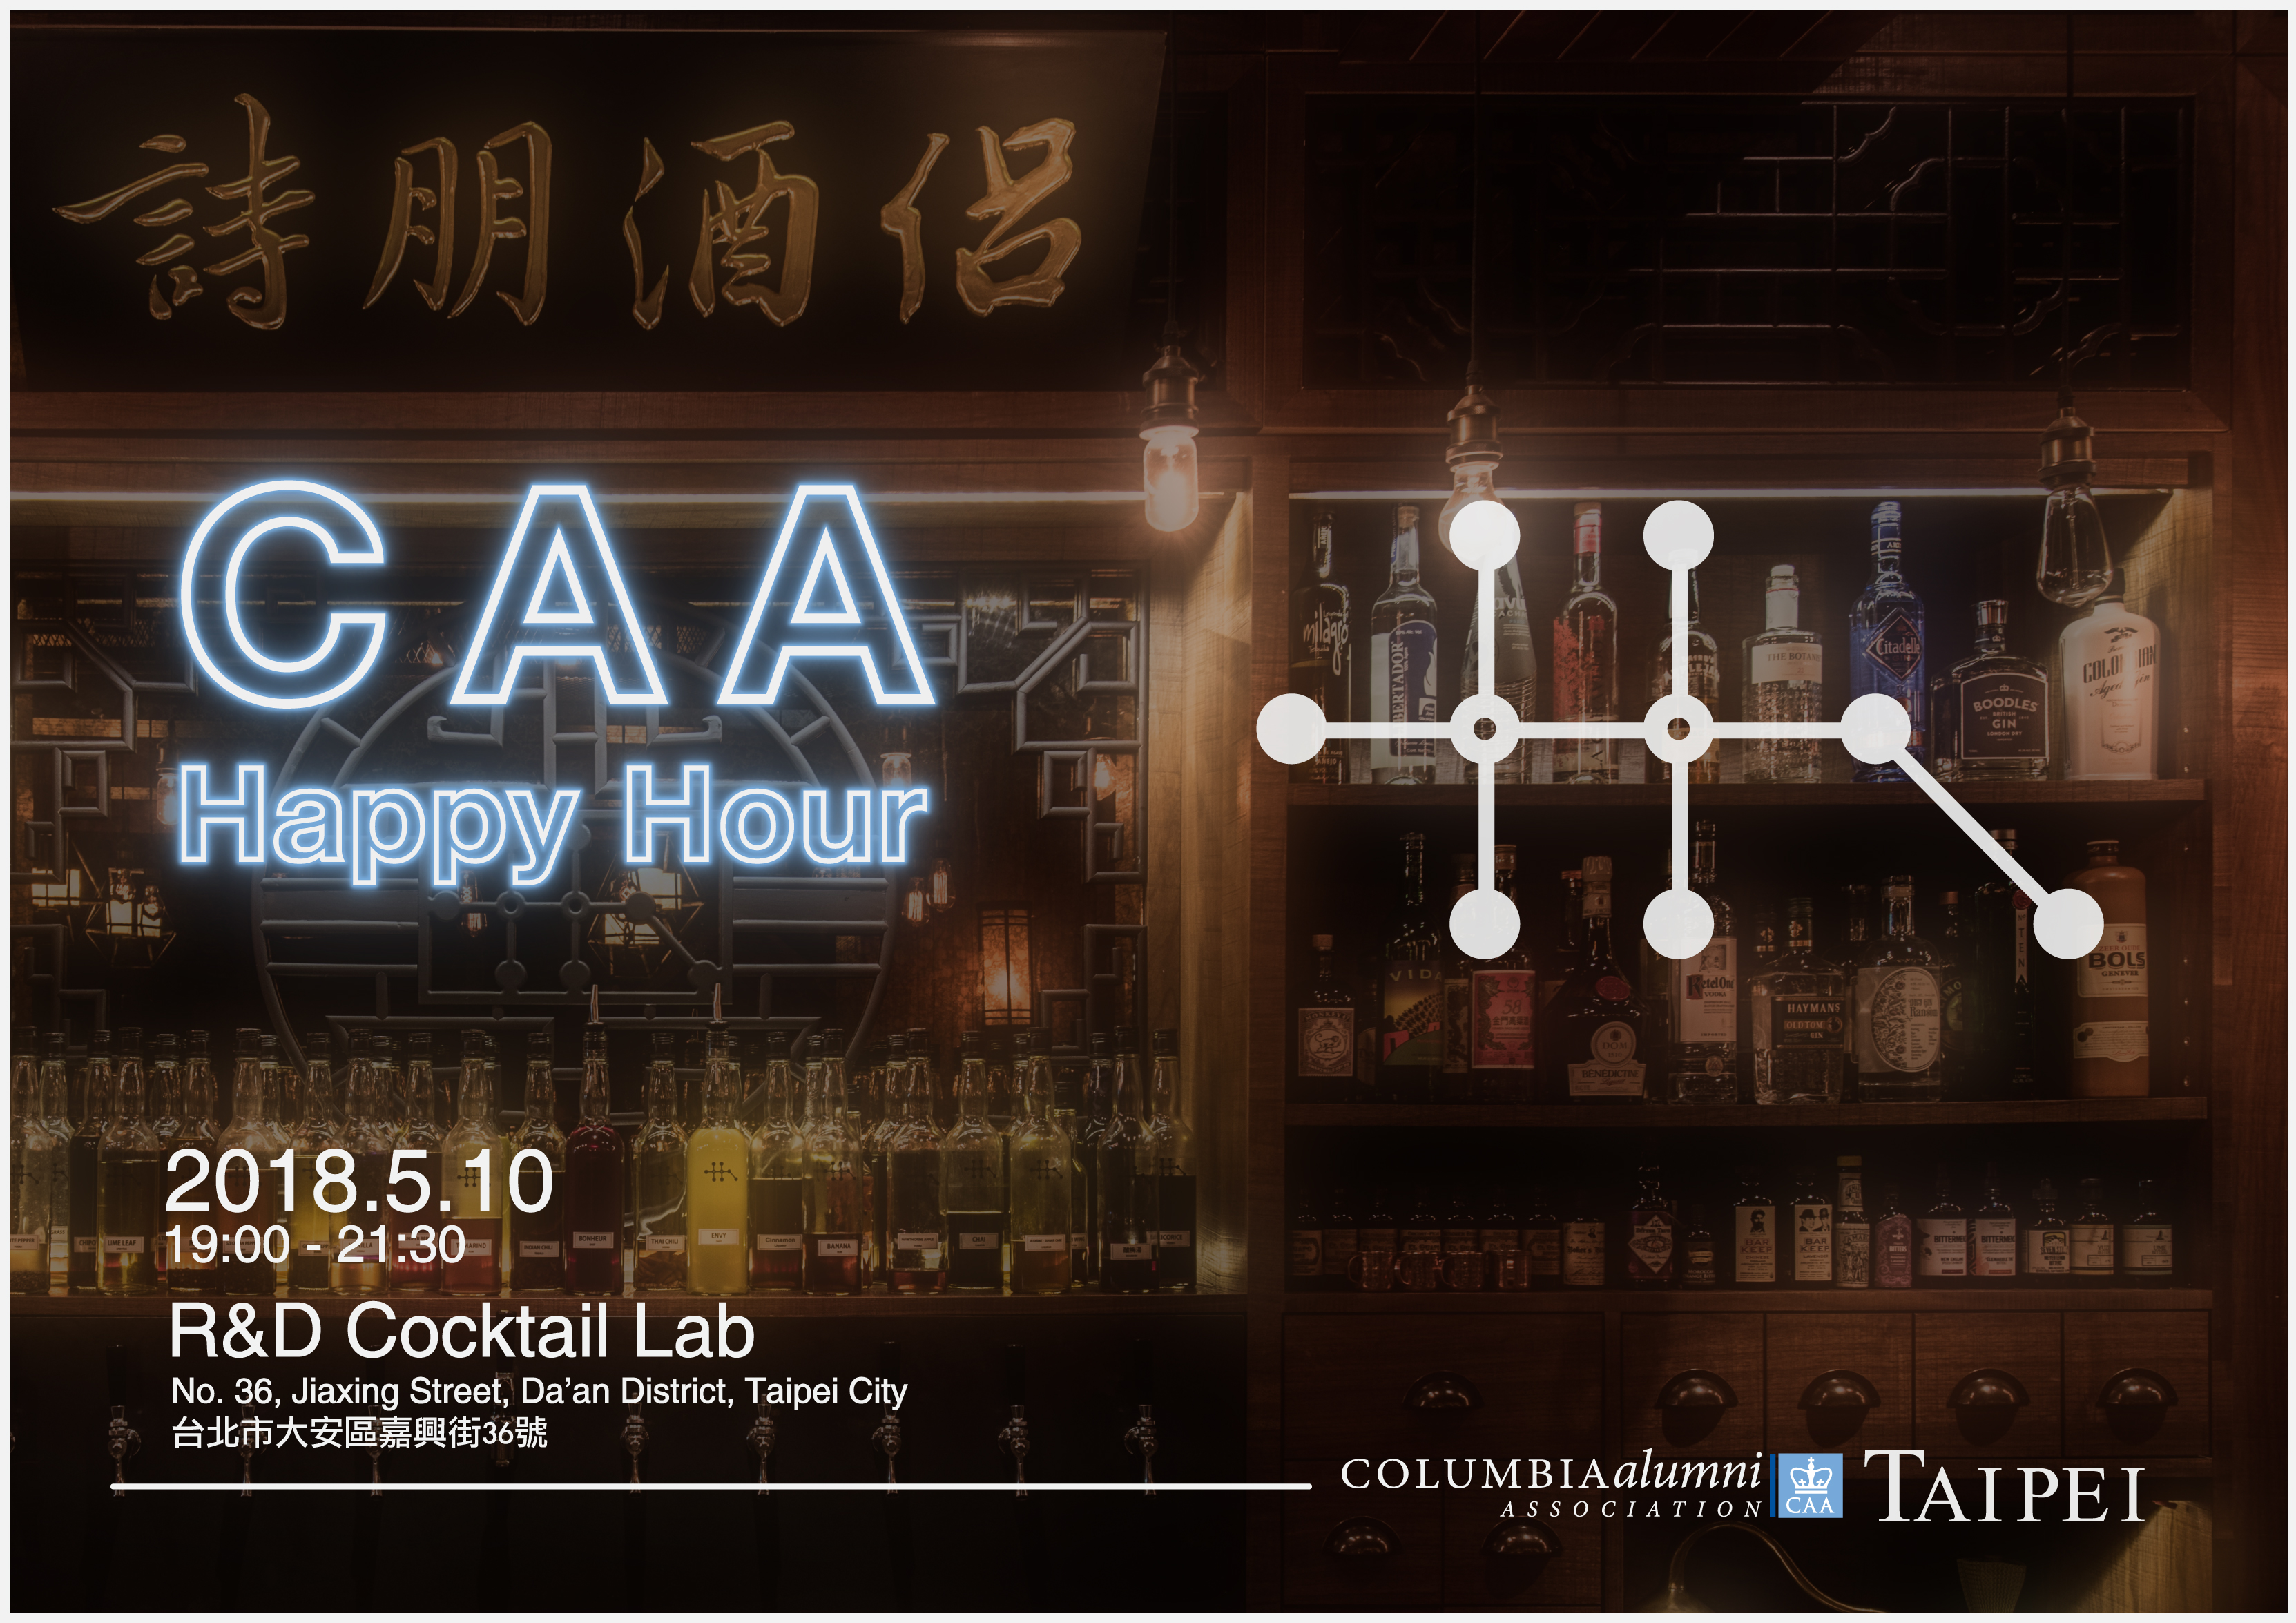 CAA_Happy_Hour_20180417-2-03_拷貝.jpg